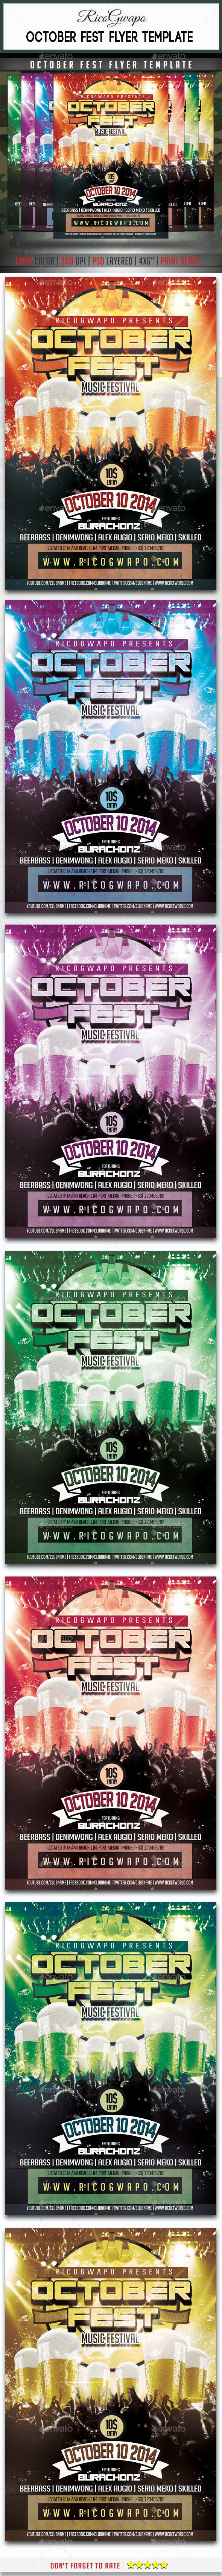 October Fest Flyer Template - Events Flyers